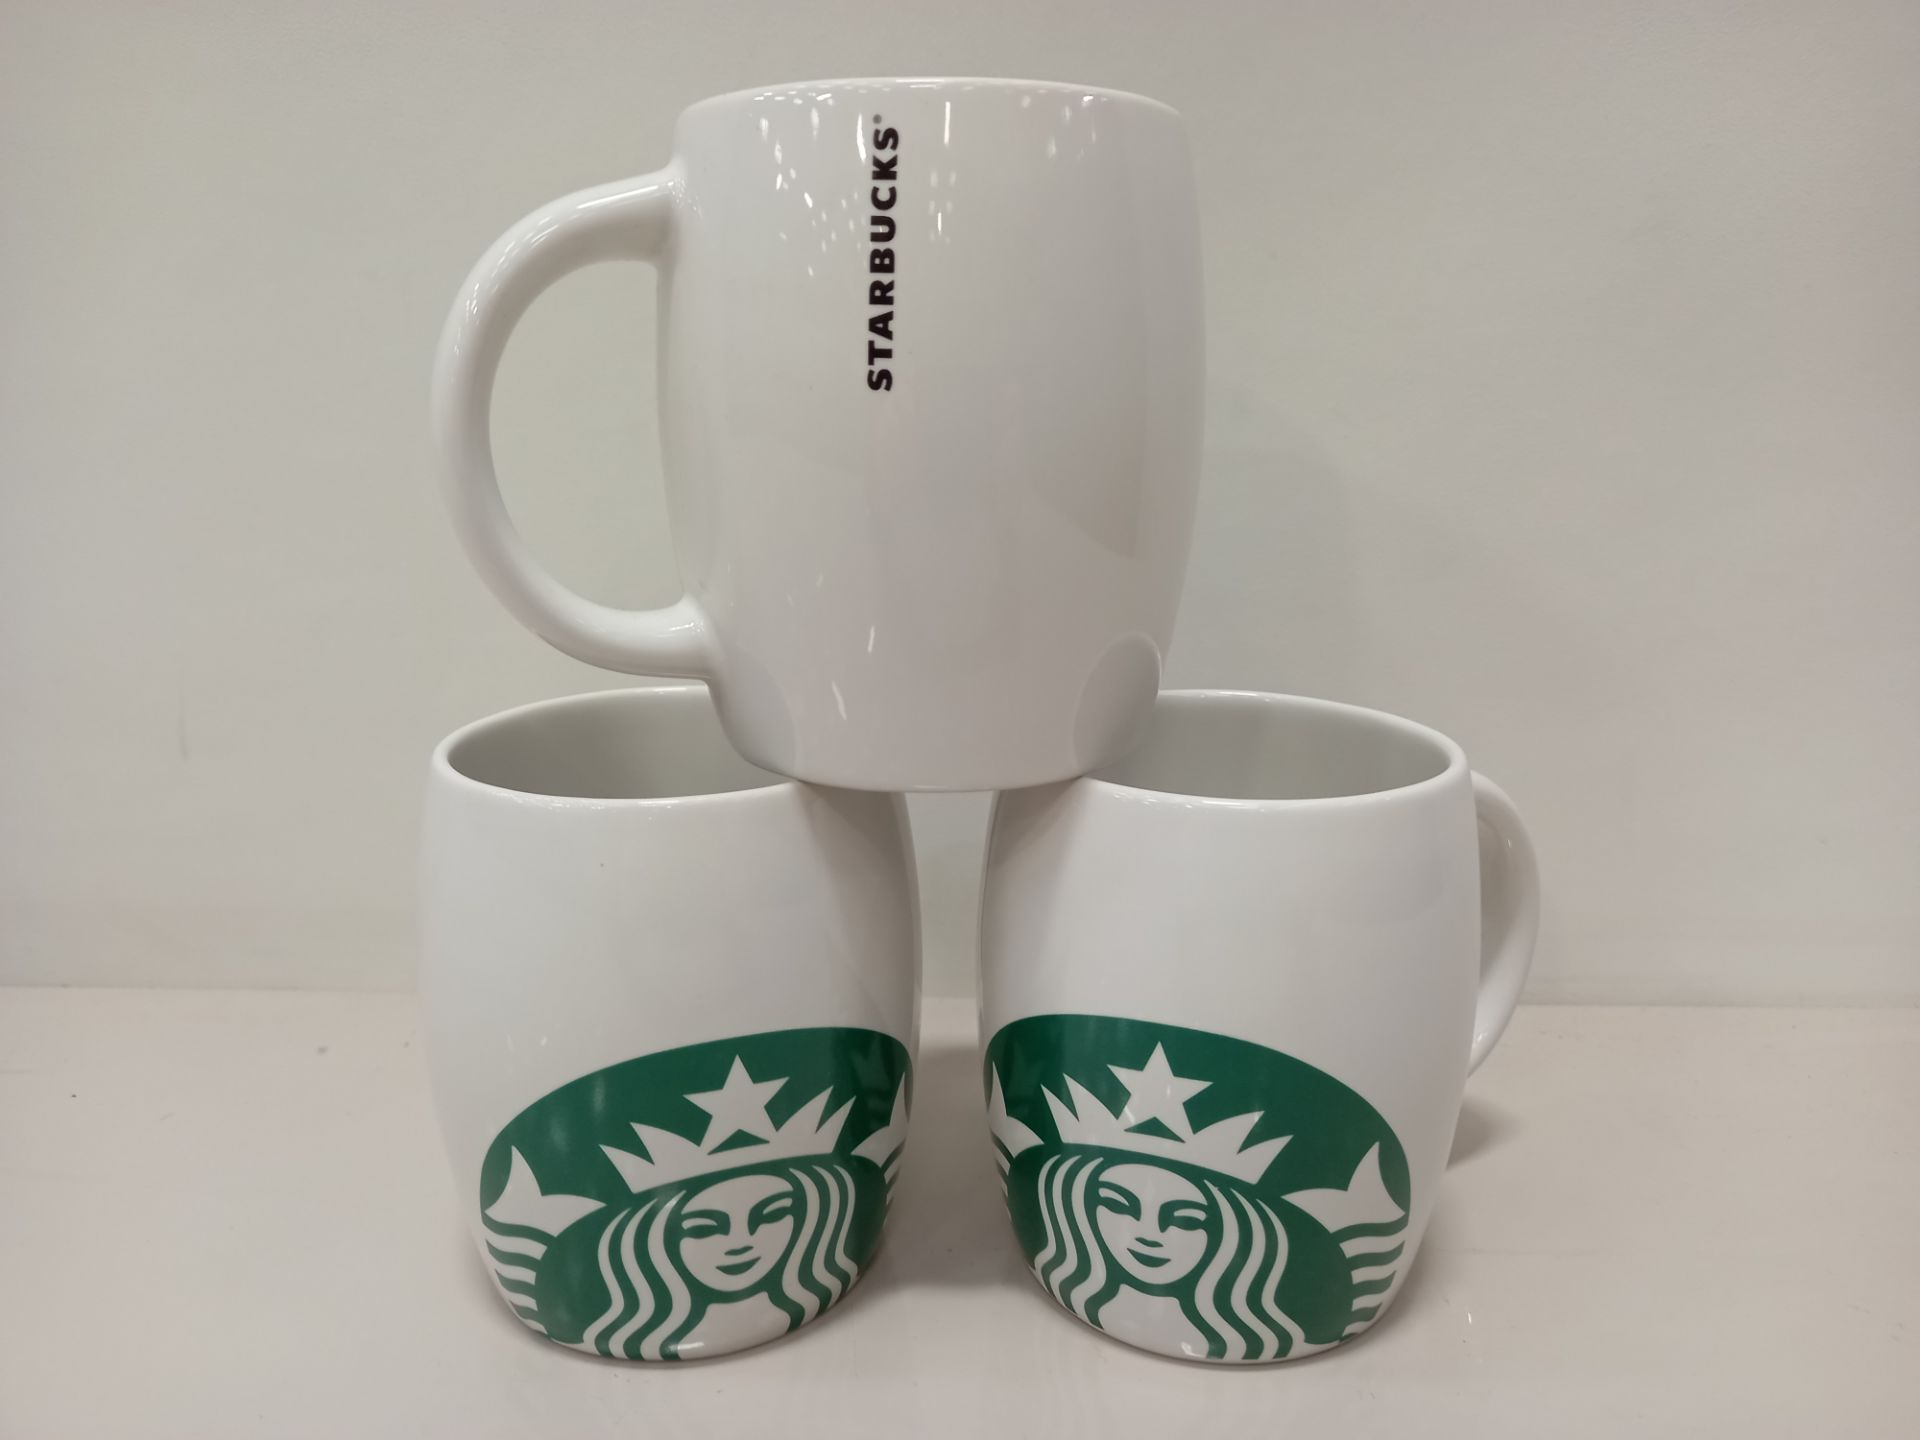 64 X BRAND NEW STARBUCKS COFFEE MUGS (MICROWAVE & DISHWASHER SAFE) - IN 4 BOXES